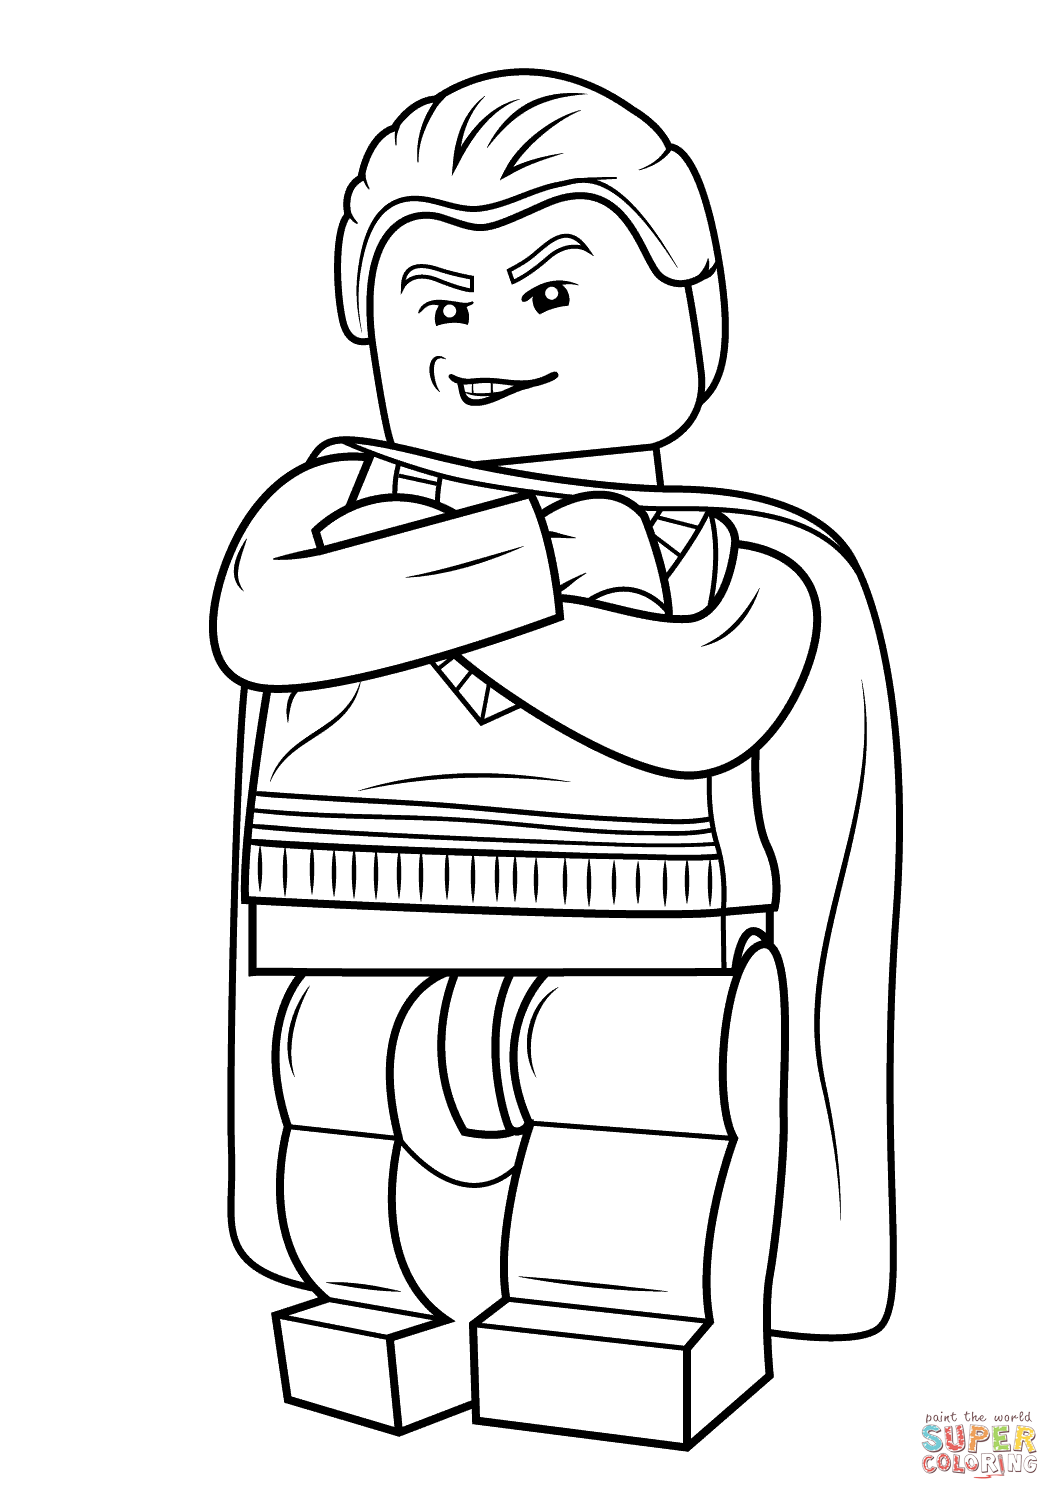 Lego Draco Malfoy Coloring Page Free Printable Coloring Pages